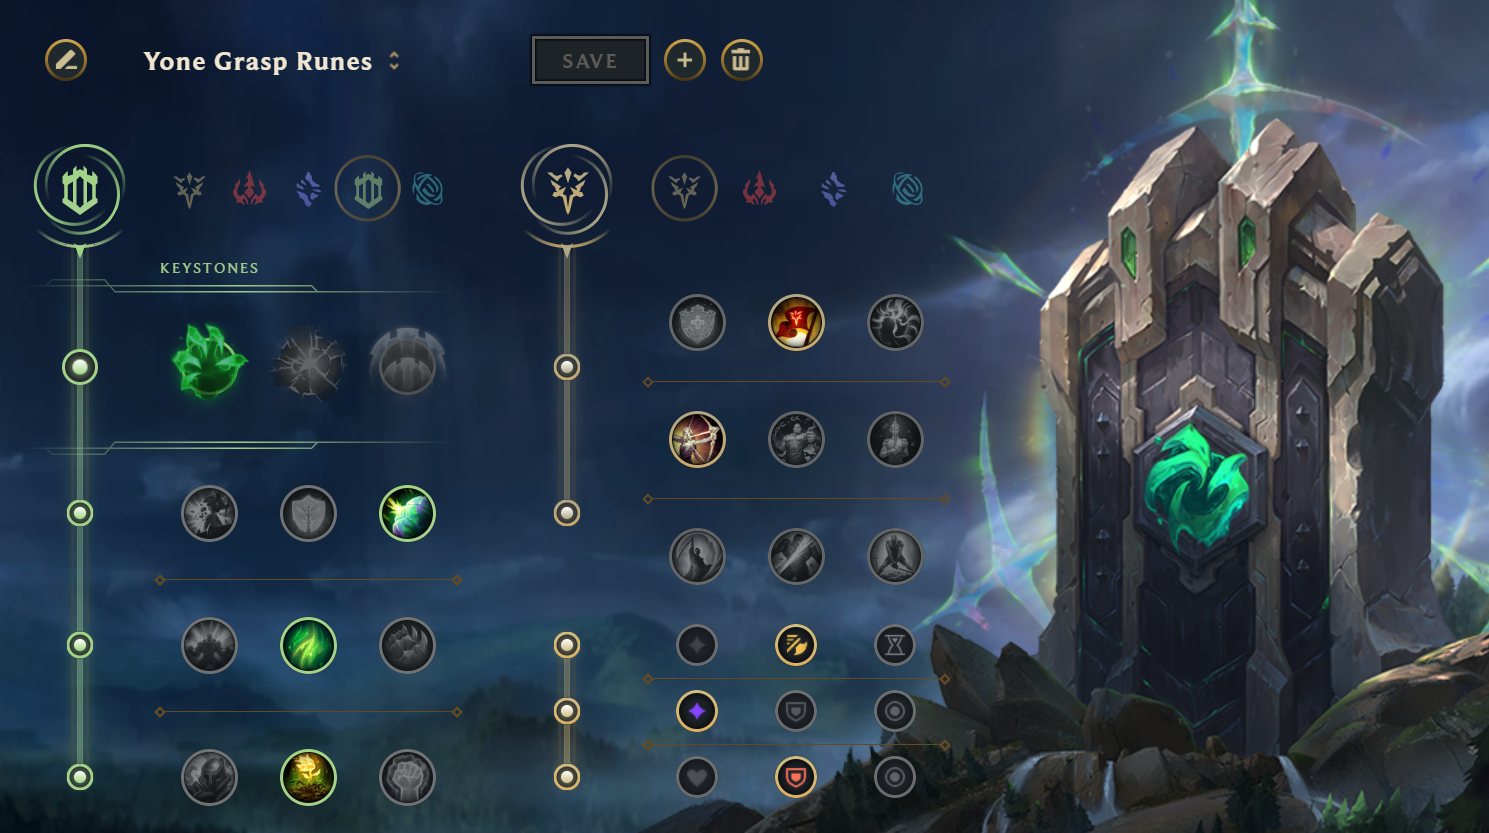 Grasp of the Undying Runes for Yone in League of Legends